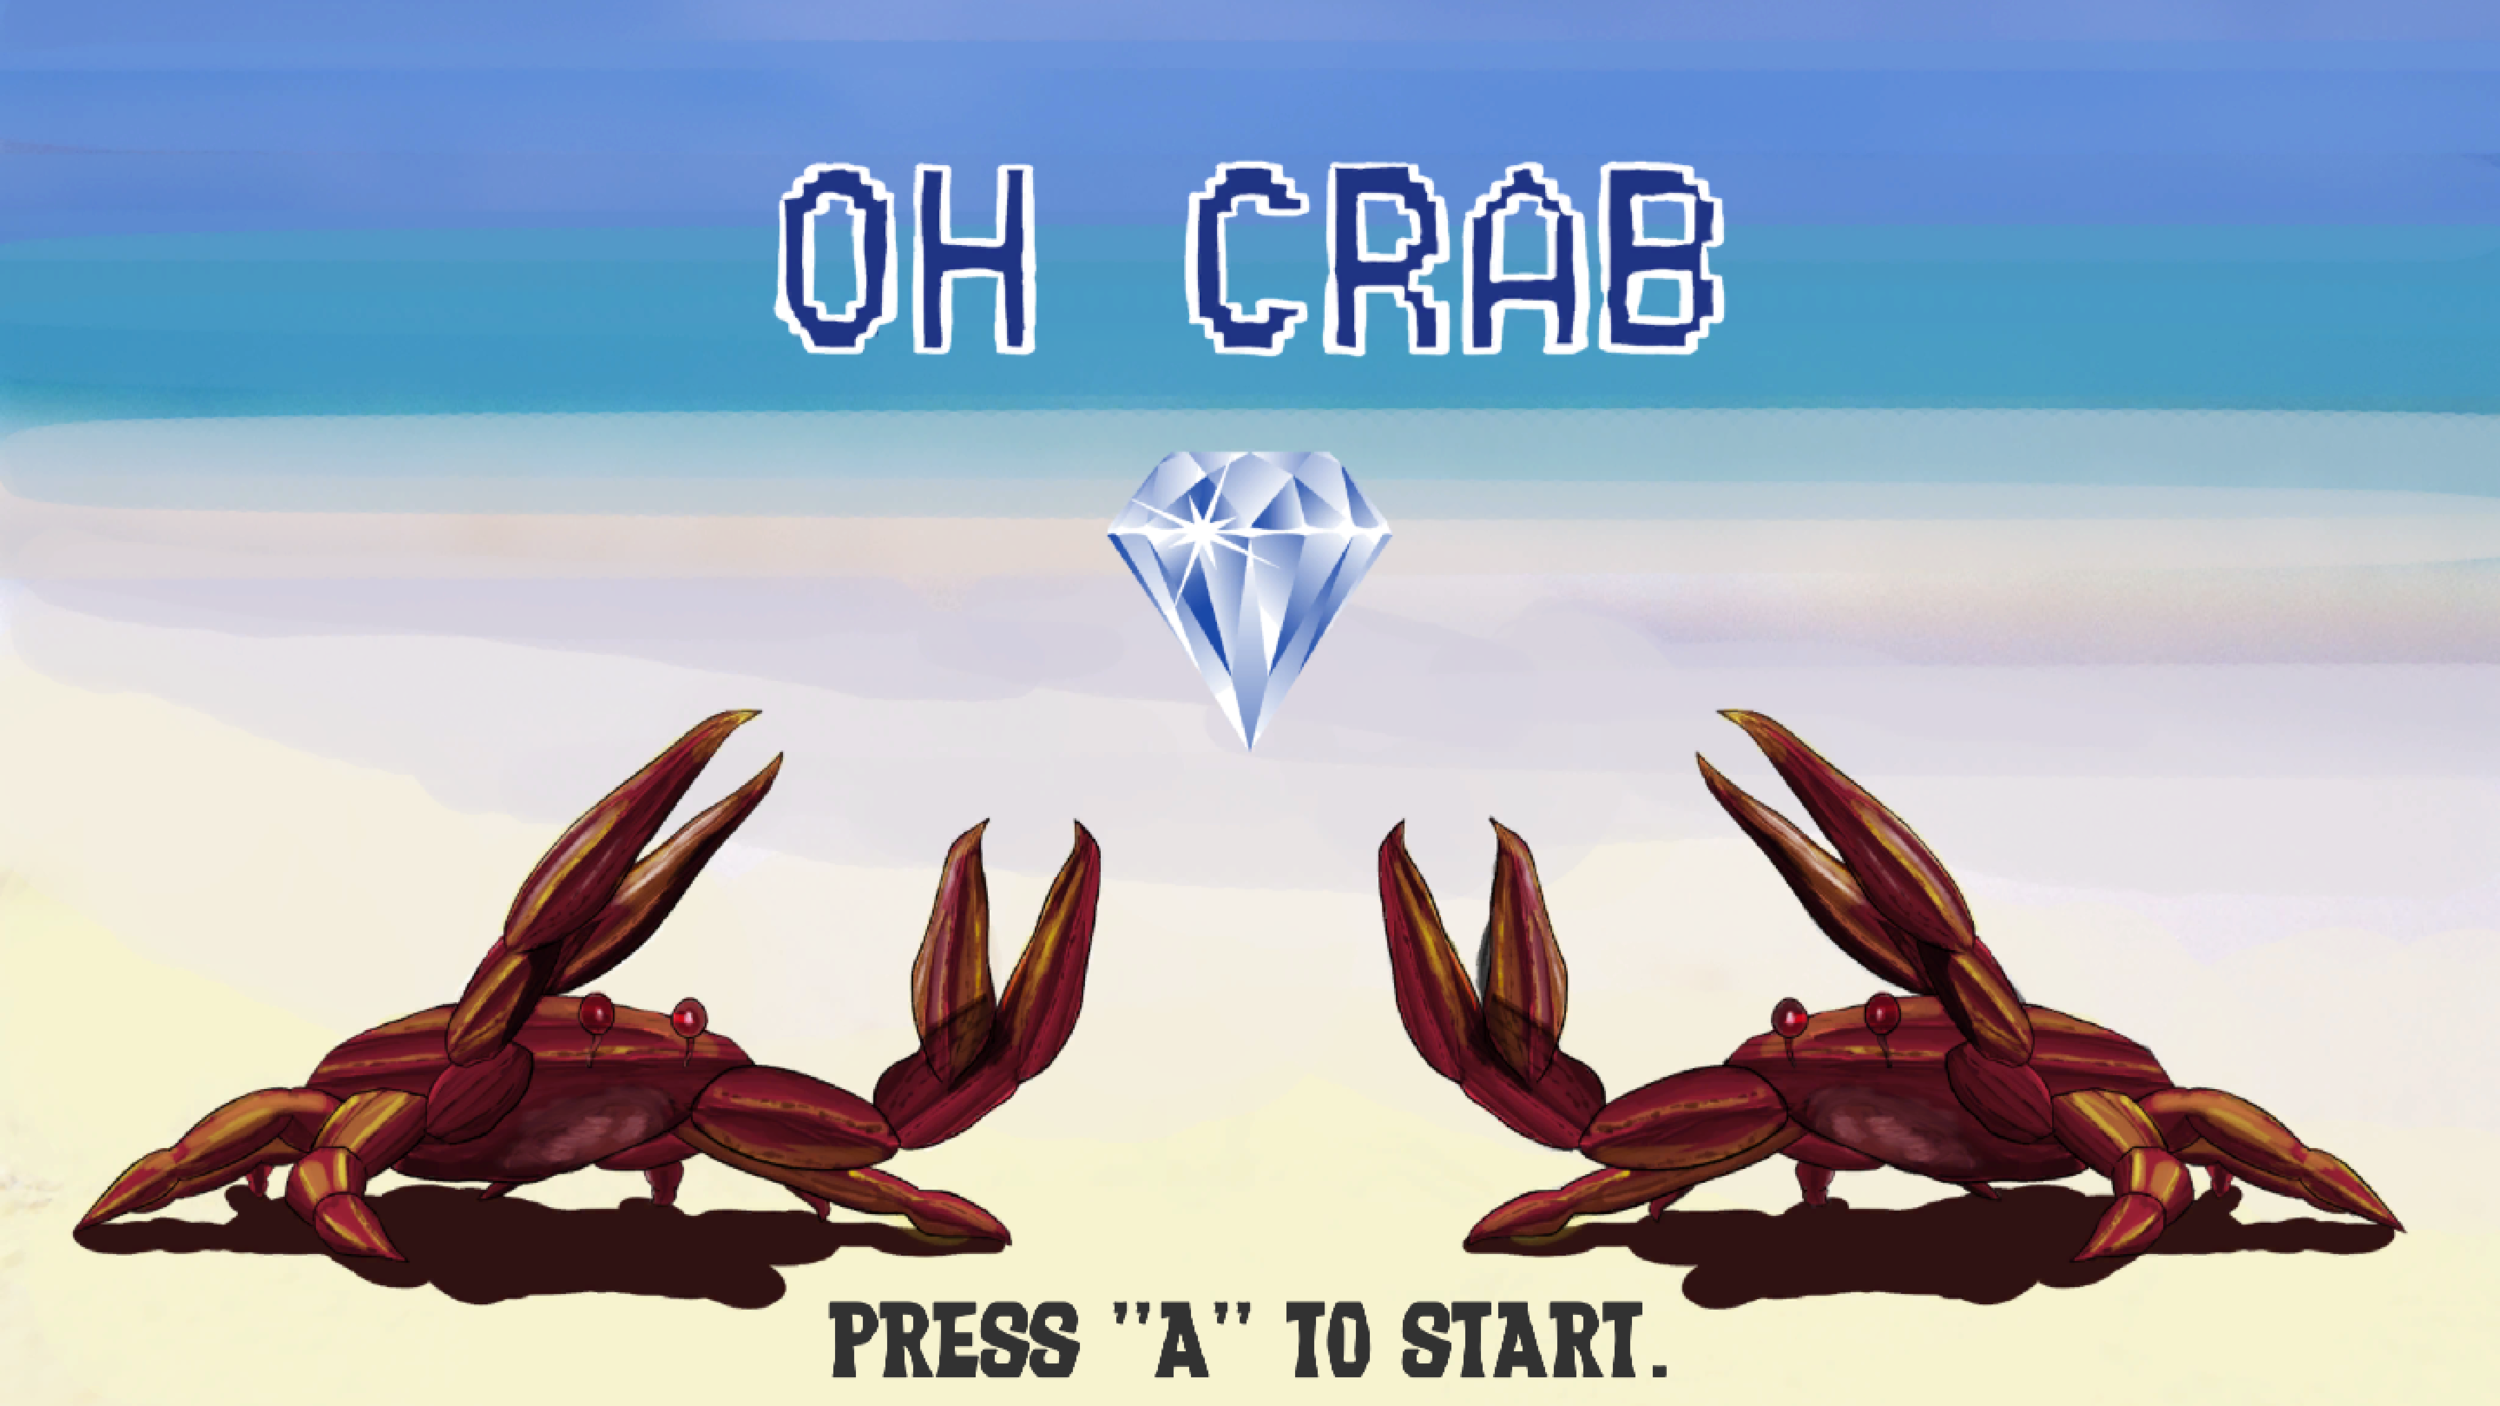 Oh Crab! - A two player game developed during the 2017 Global Game Jam